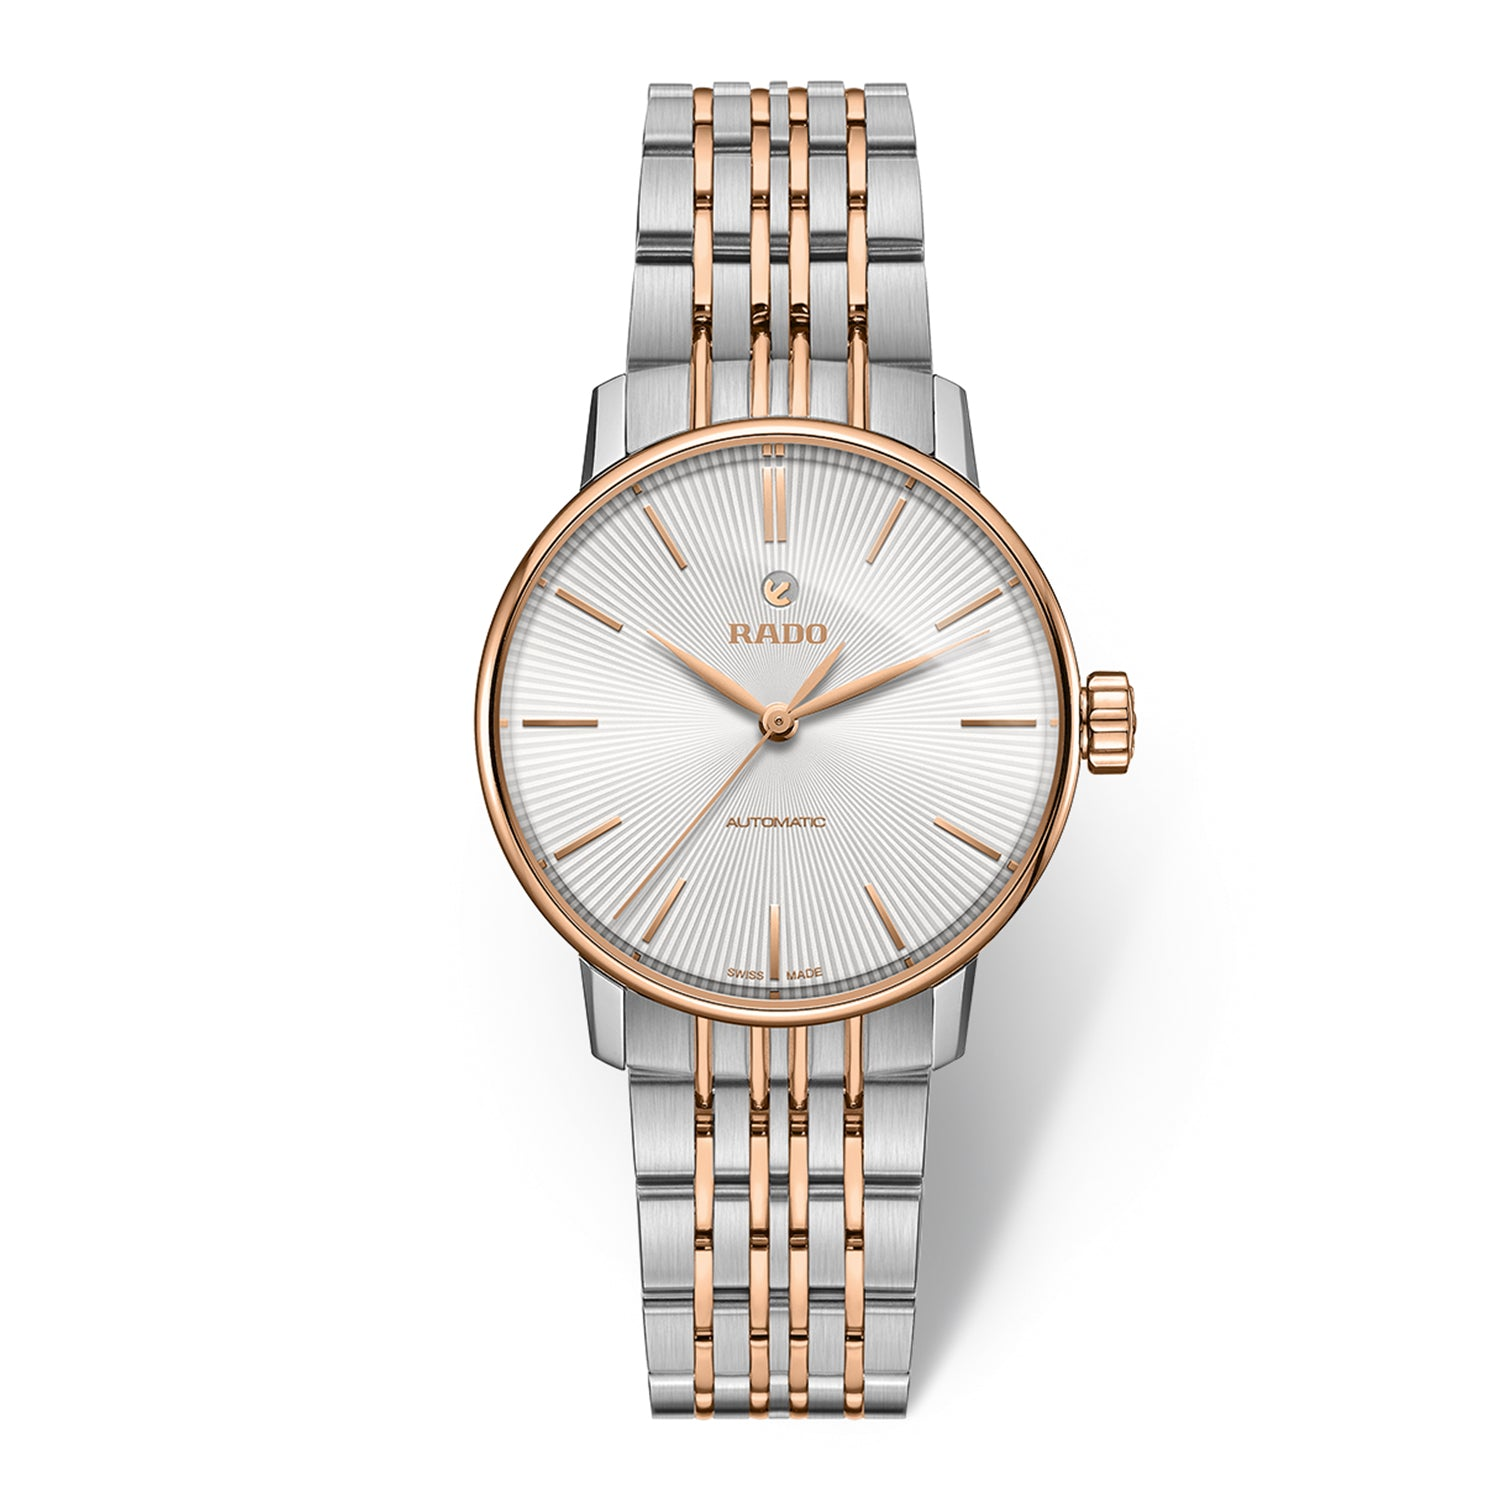 Rado Coupole Classic S watch with 9-Link Stainless steel bracelet and rose PVD